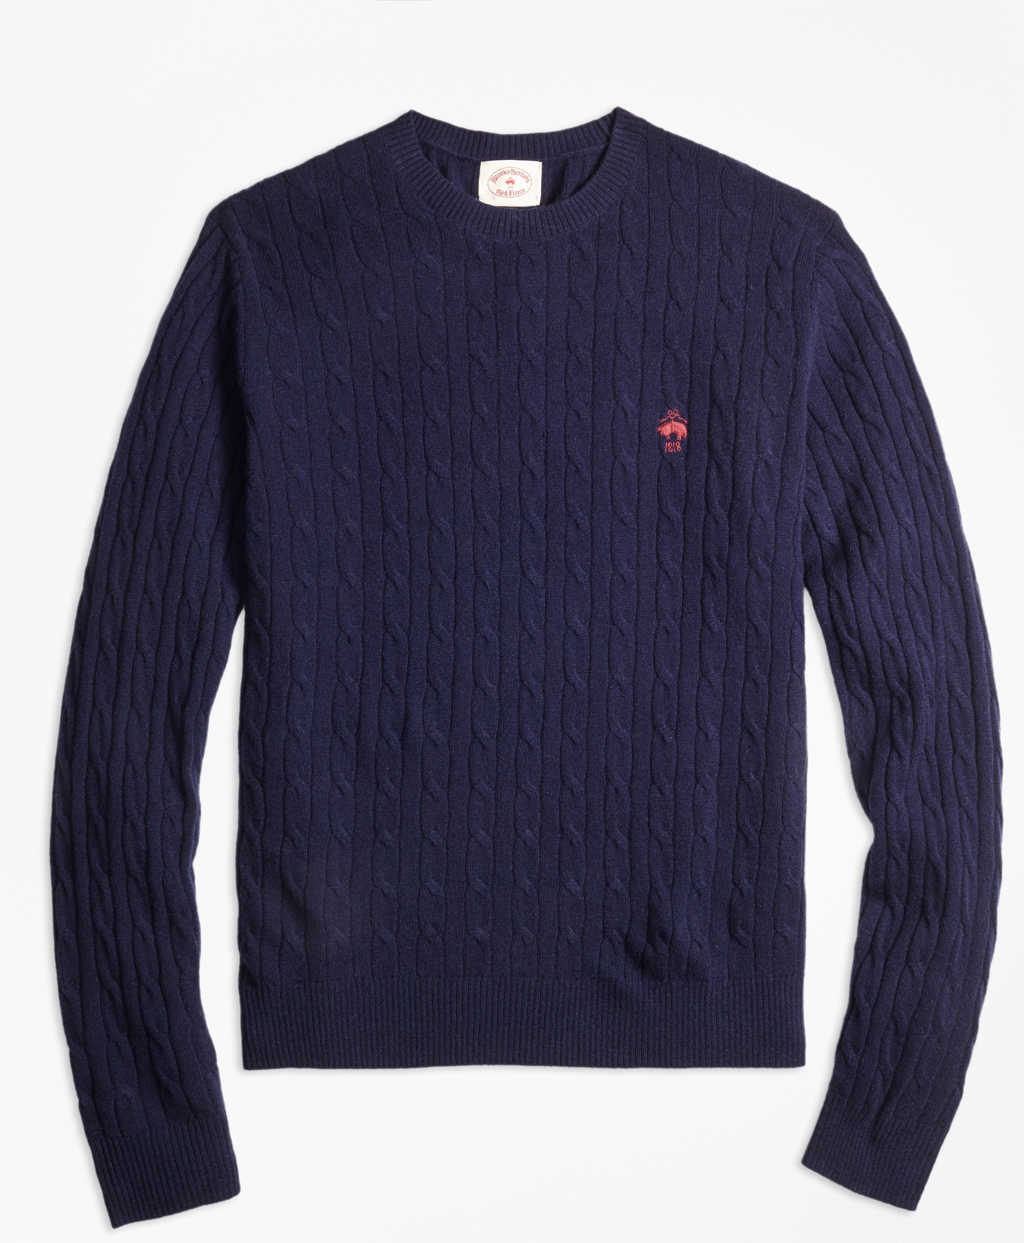 Lambswool Cable Crewneck Sweater - Brooks Brothers